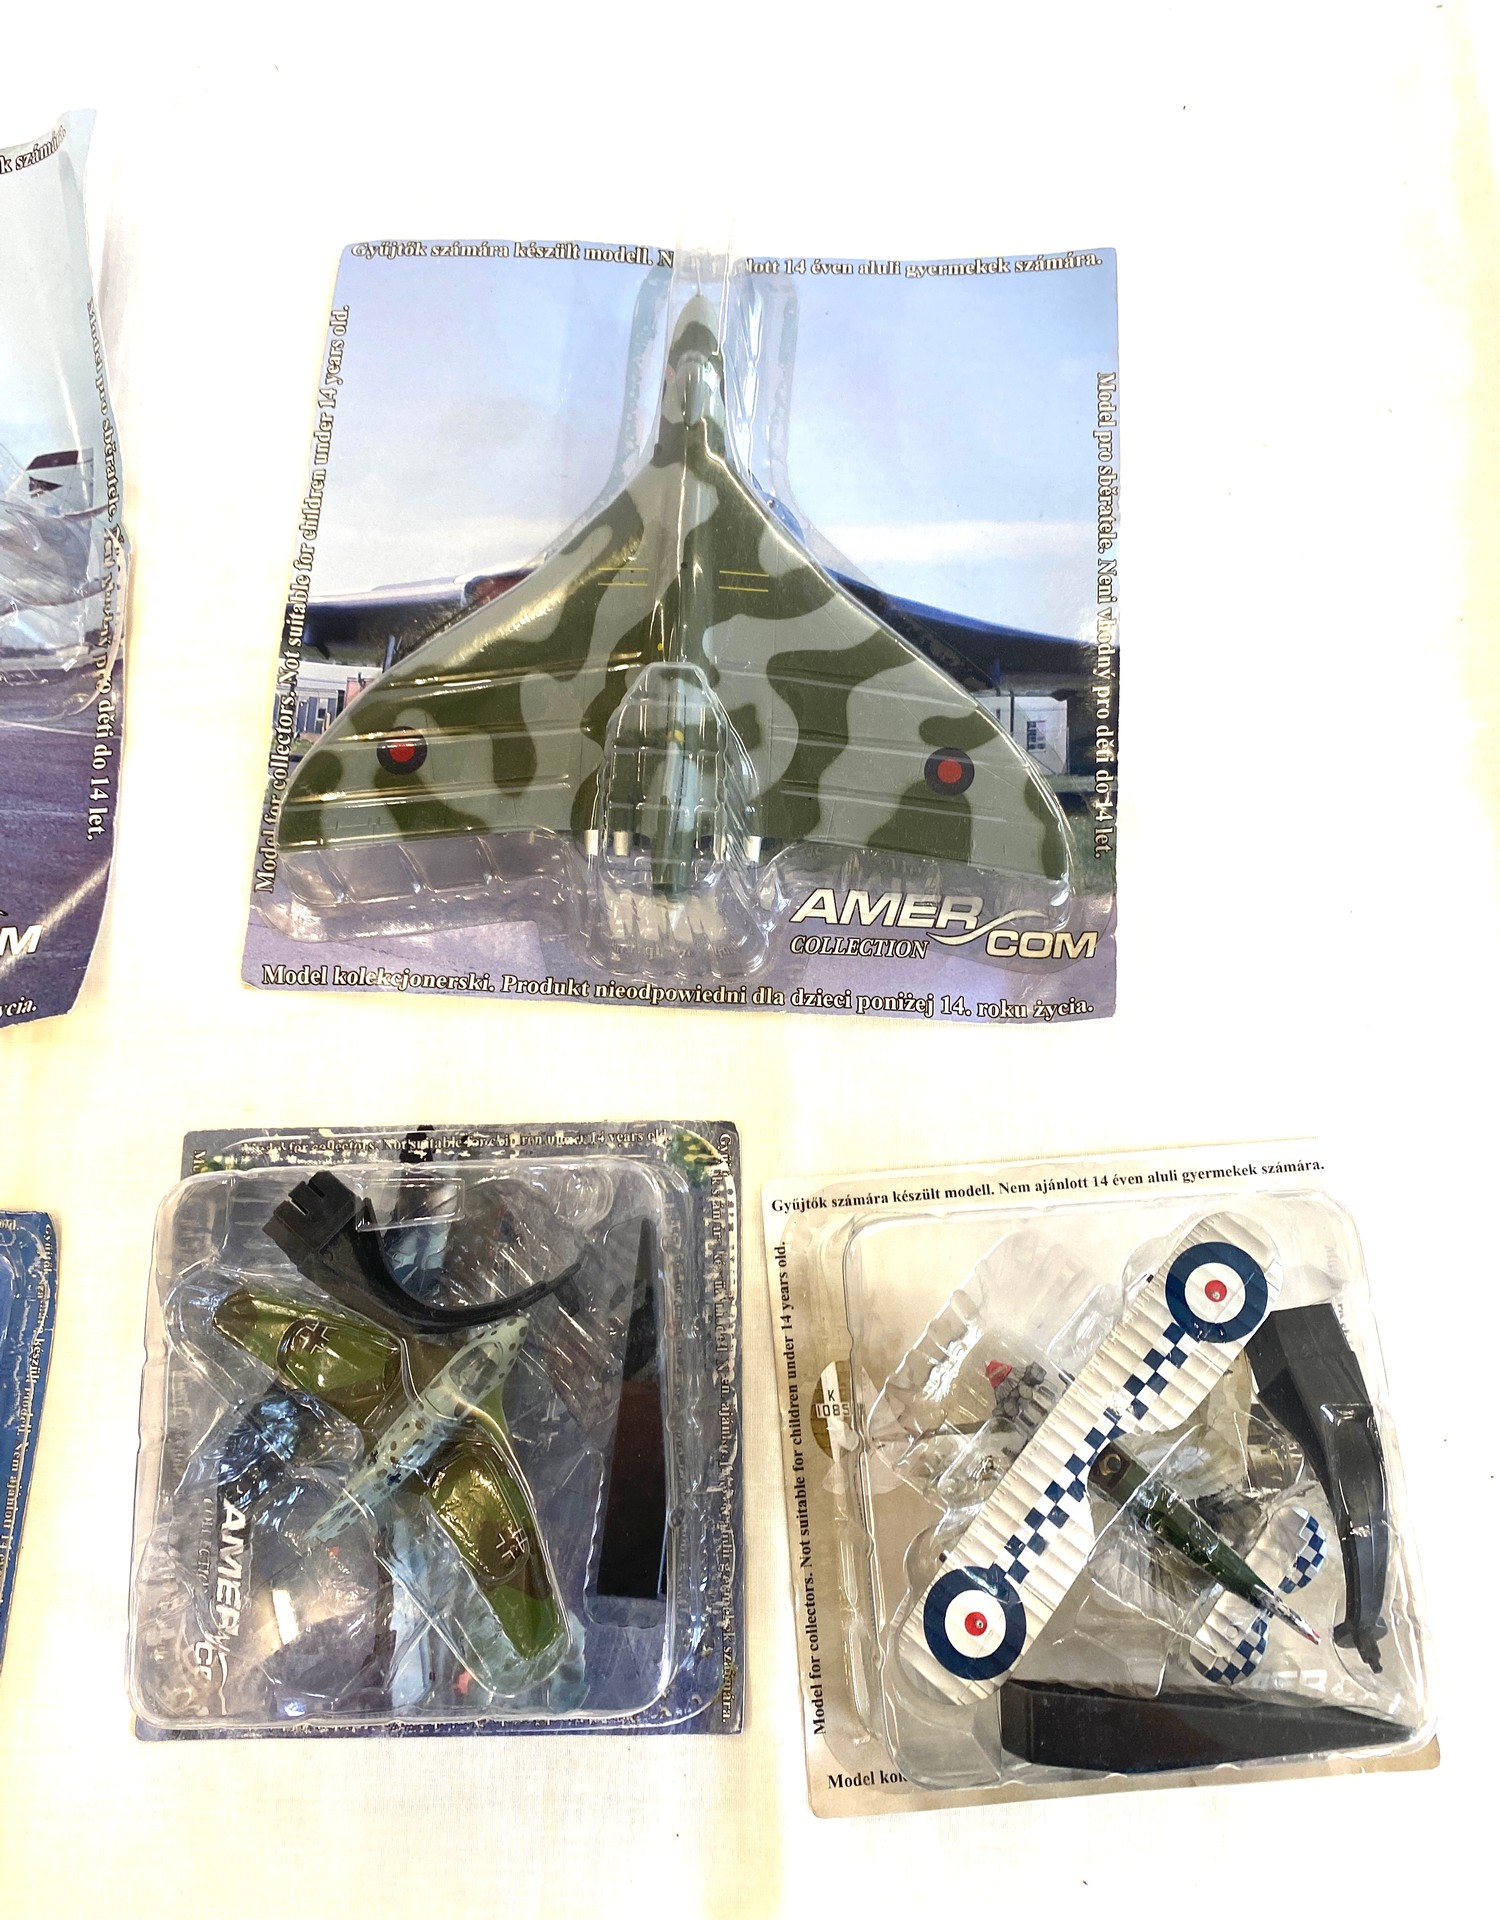 Selection of Boxed Amercom Air Craft models includes, North American p-51b, Vickers Valiant B Mk - Image 3 of 3